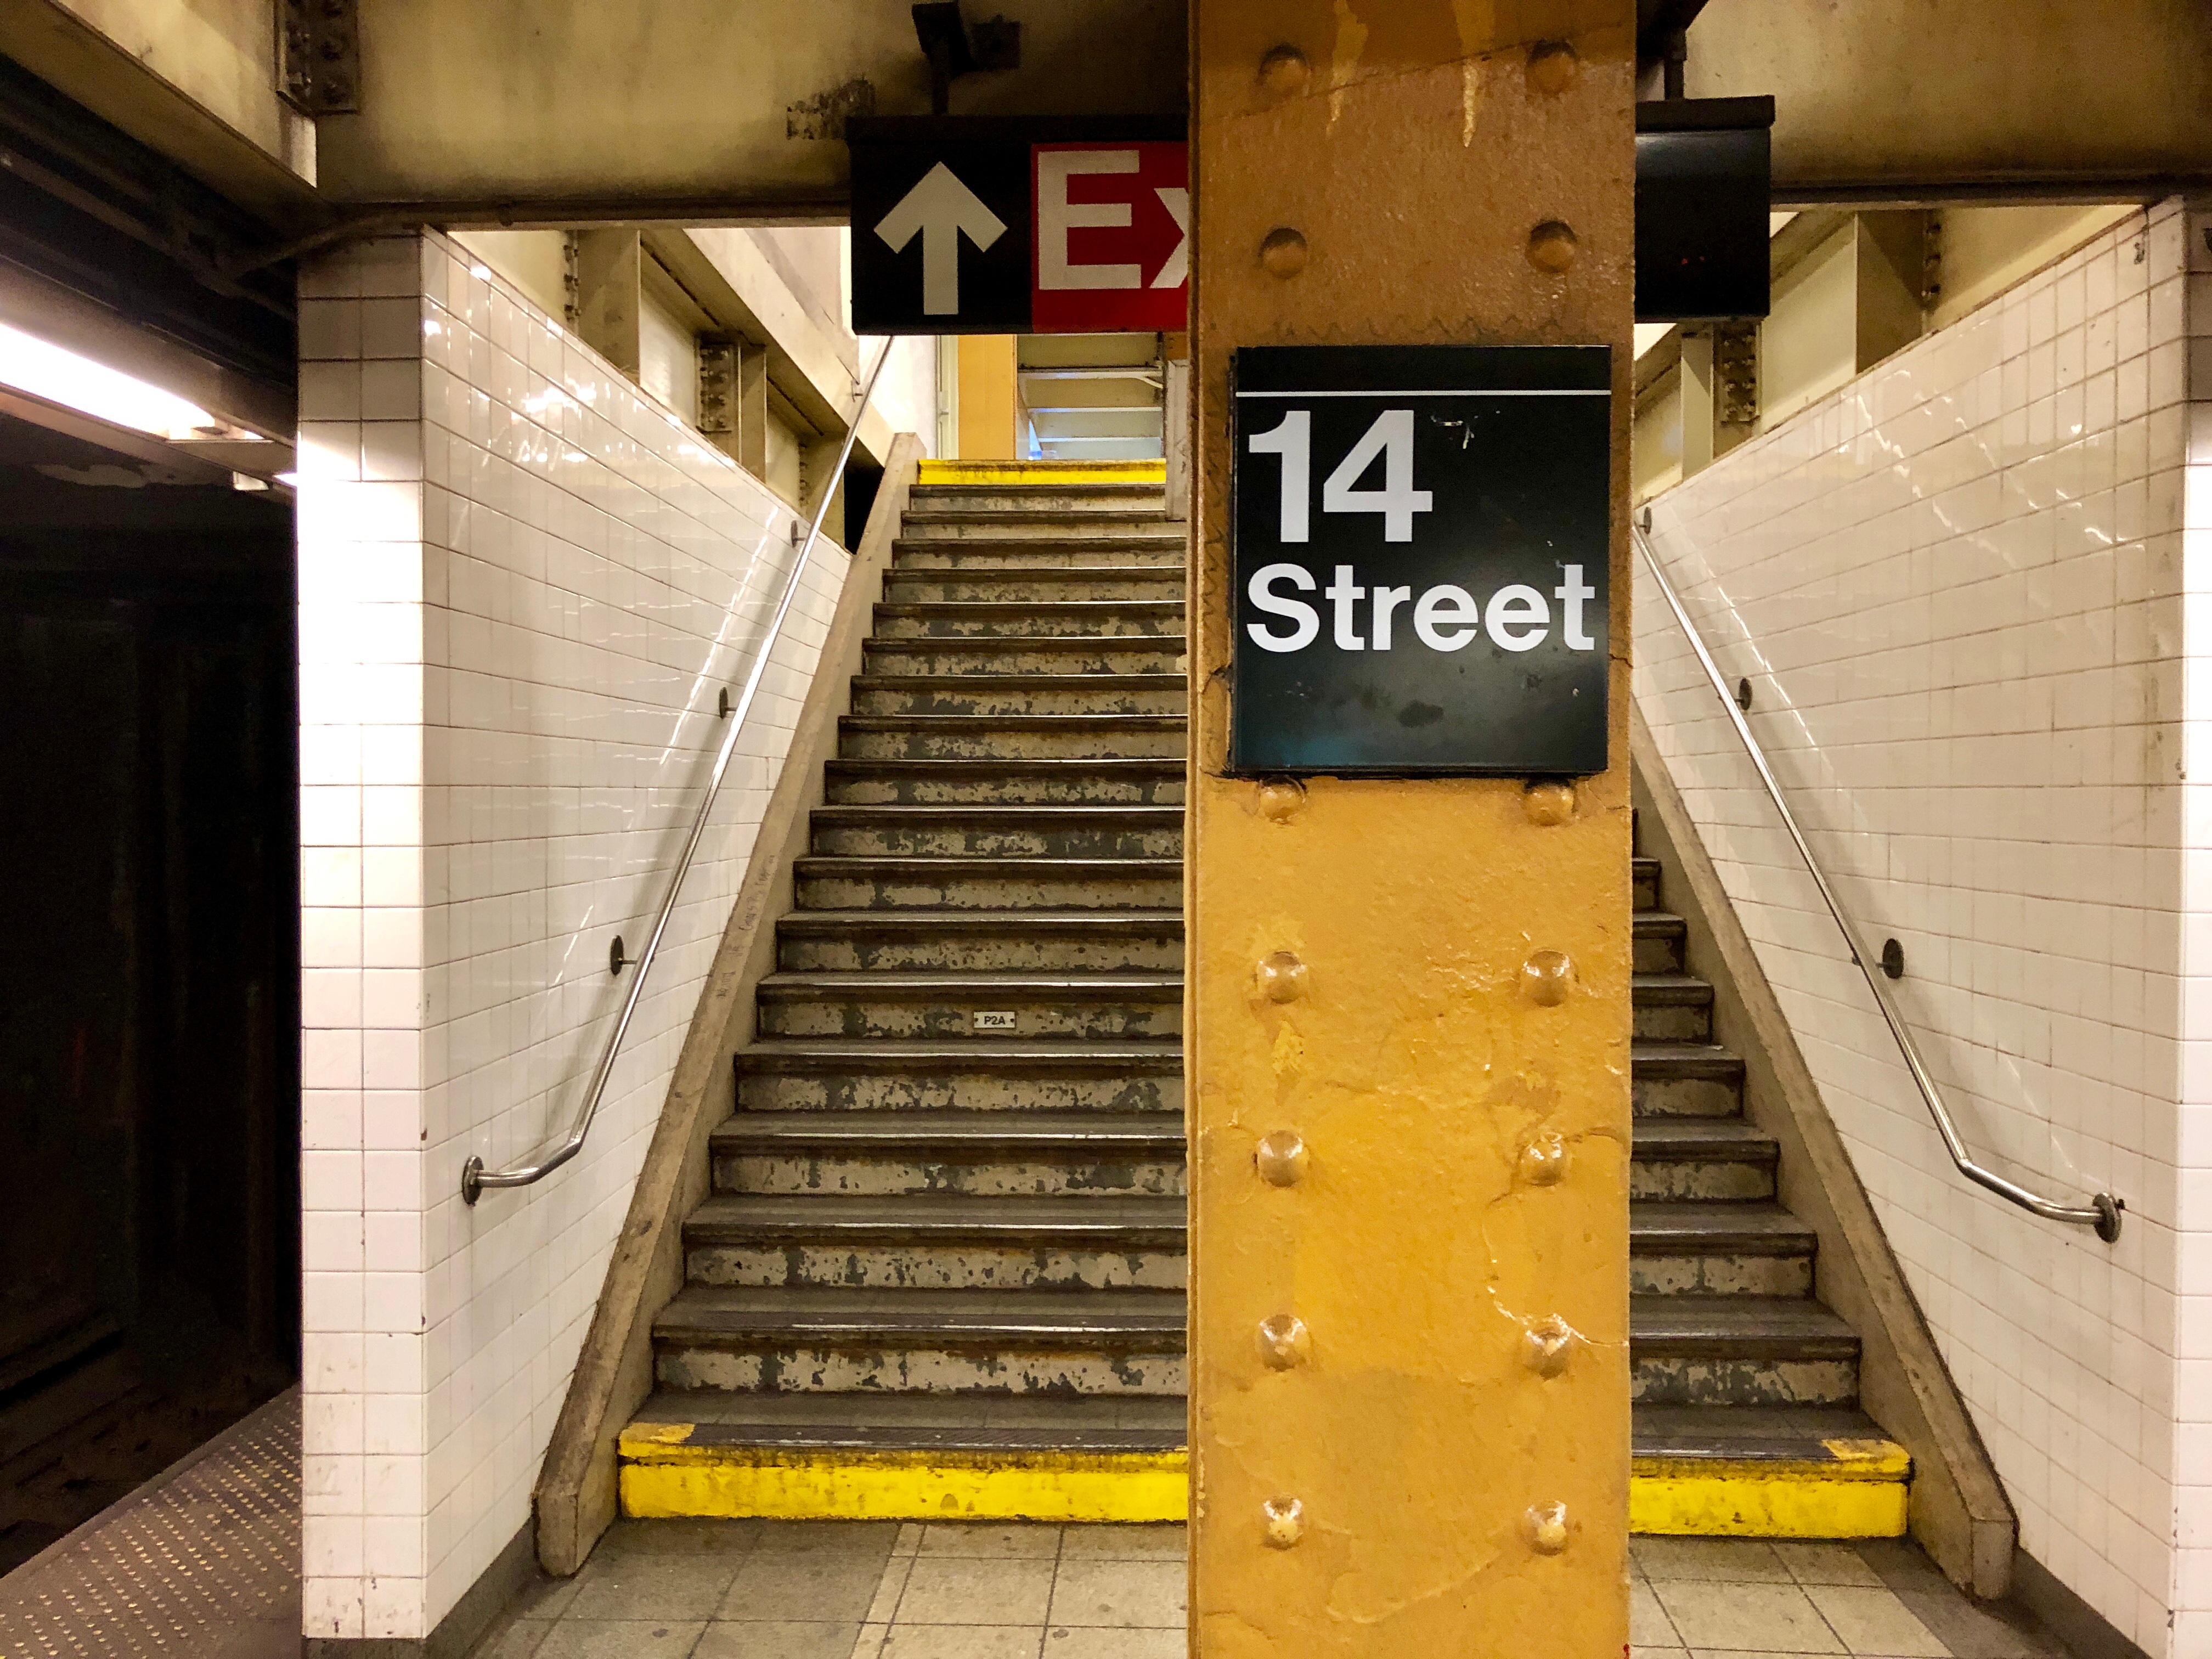 """Stairs are shown behind a column that says """"14 Street"""" in a New York City subway station."""